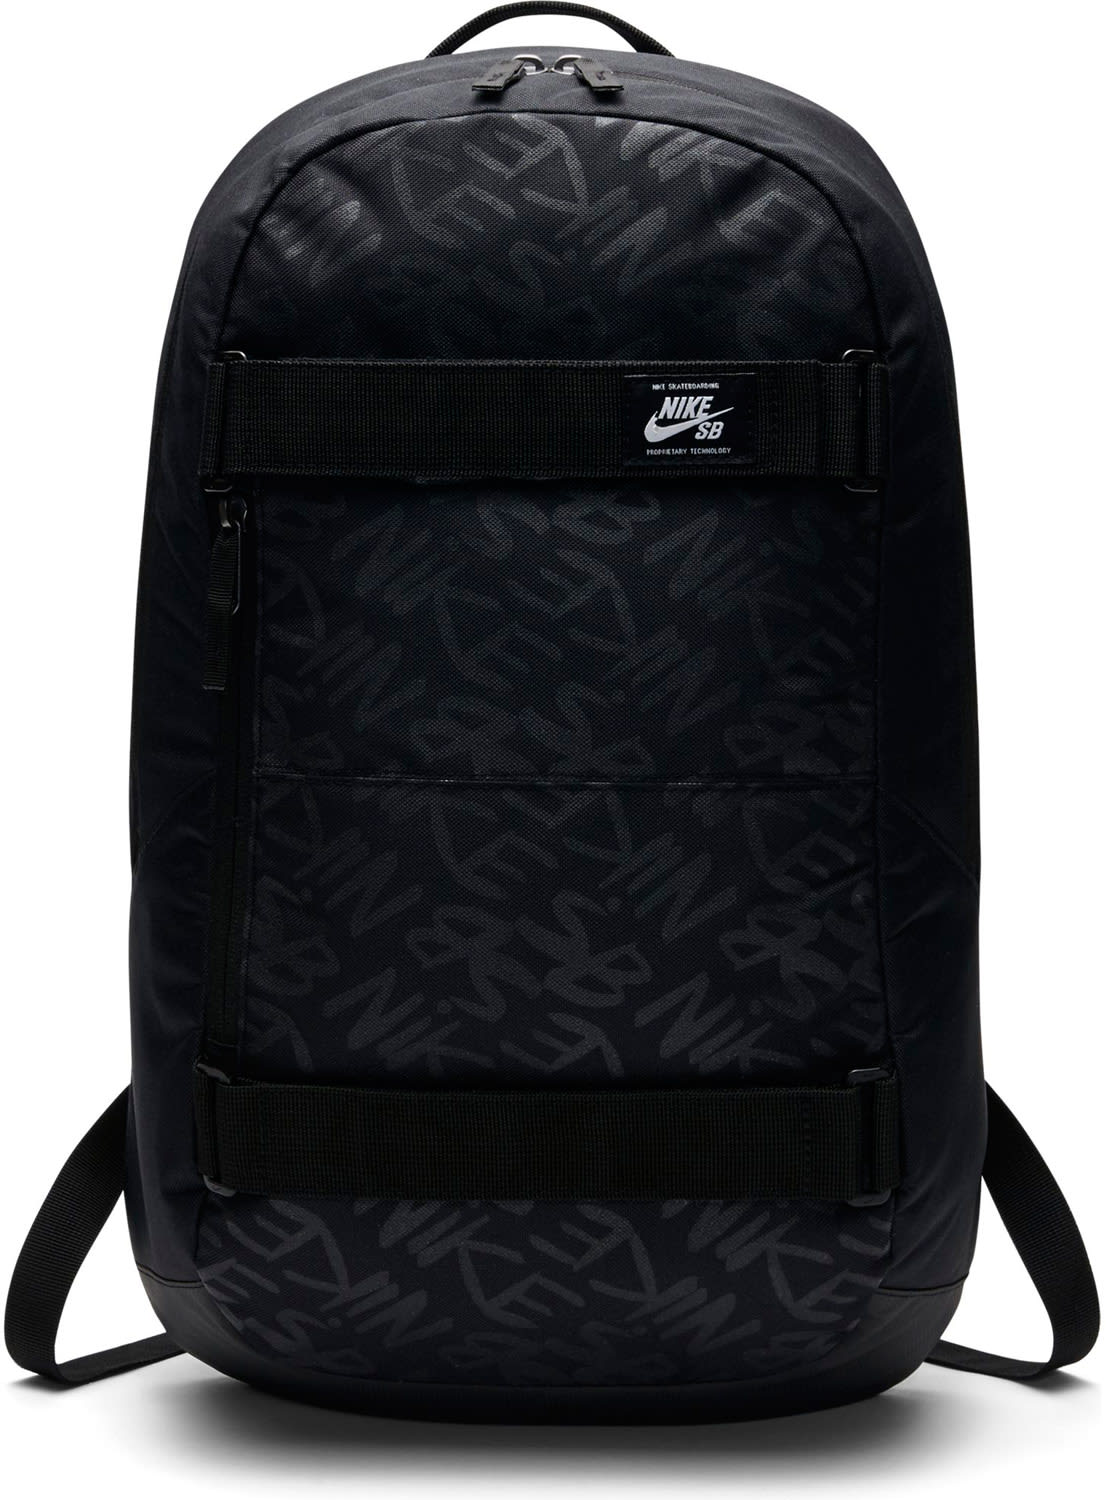 On Sale Nike Sb Courthouse Gfx Backpack Up To 40 Off